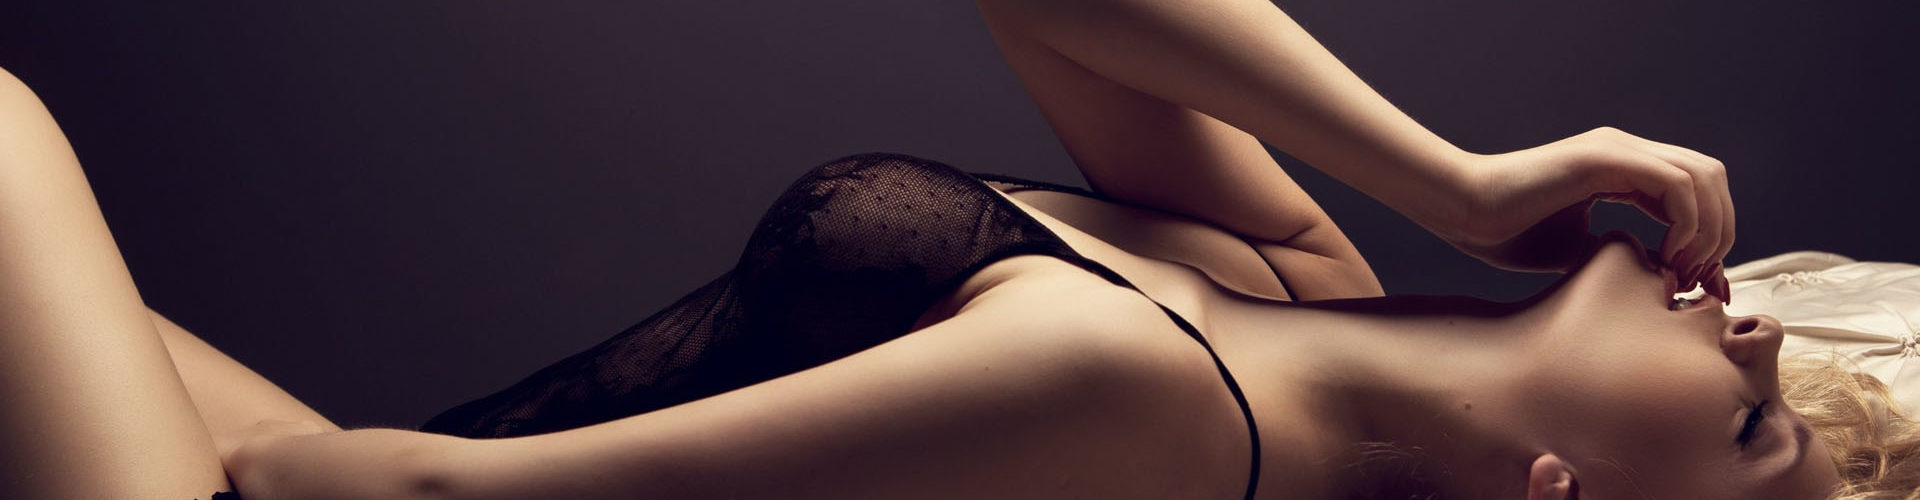 Erotic Massage in the Western Suburbs of Melbourne